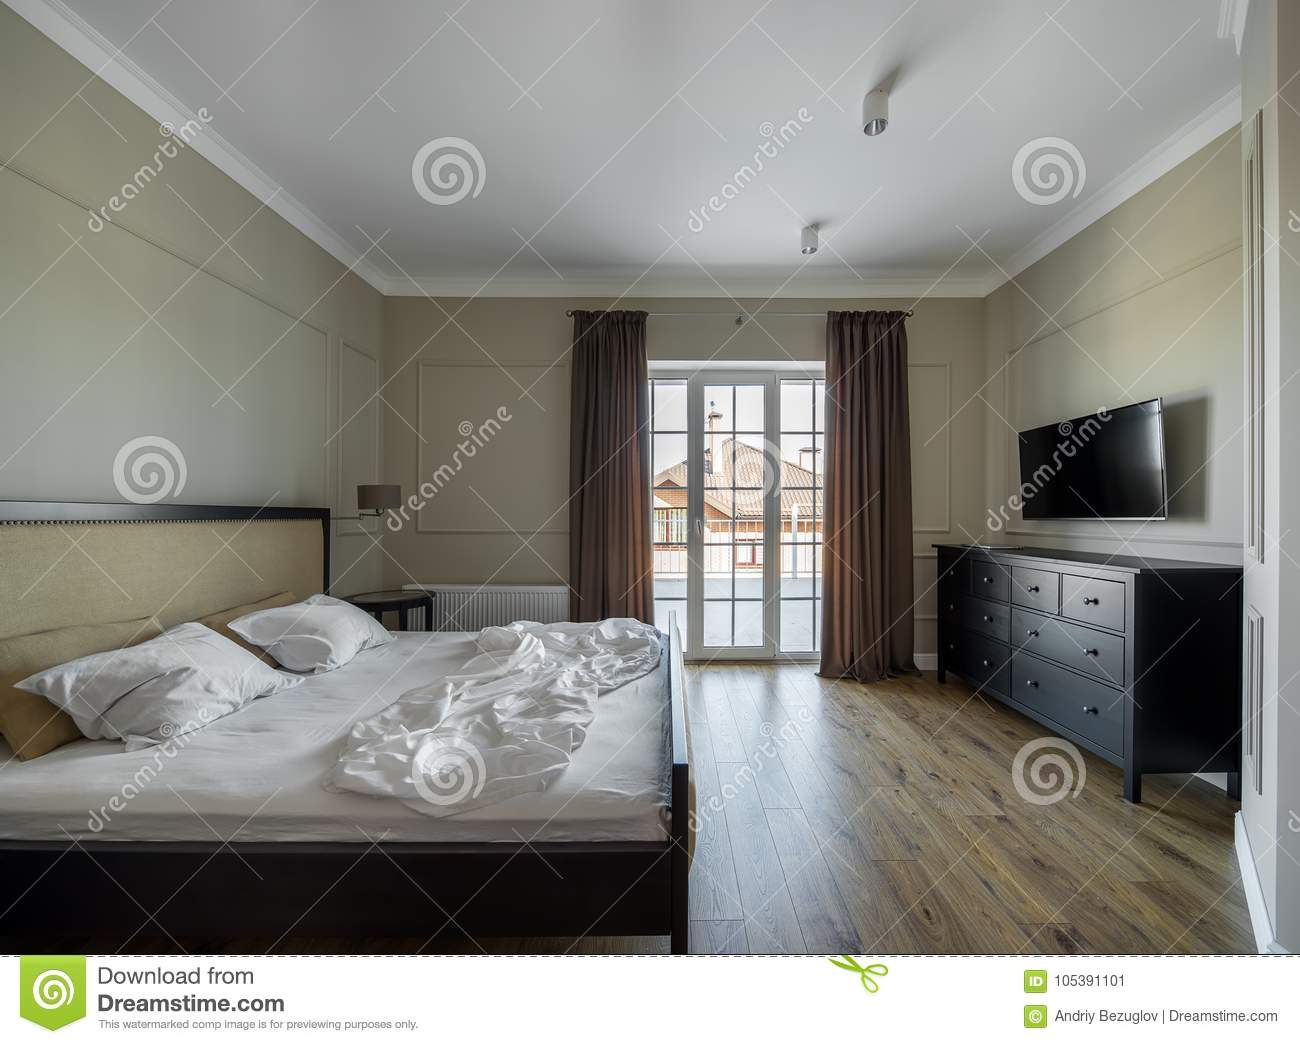 Bedroom in modern style stock image. Image of coverlet ...